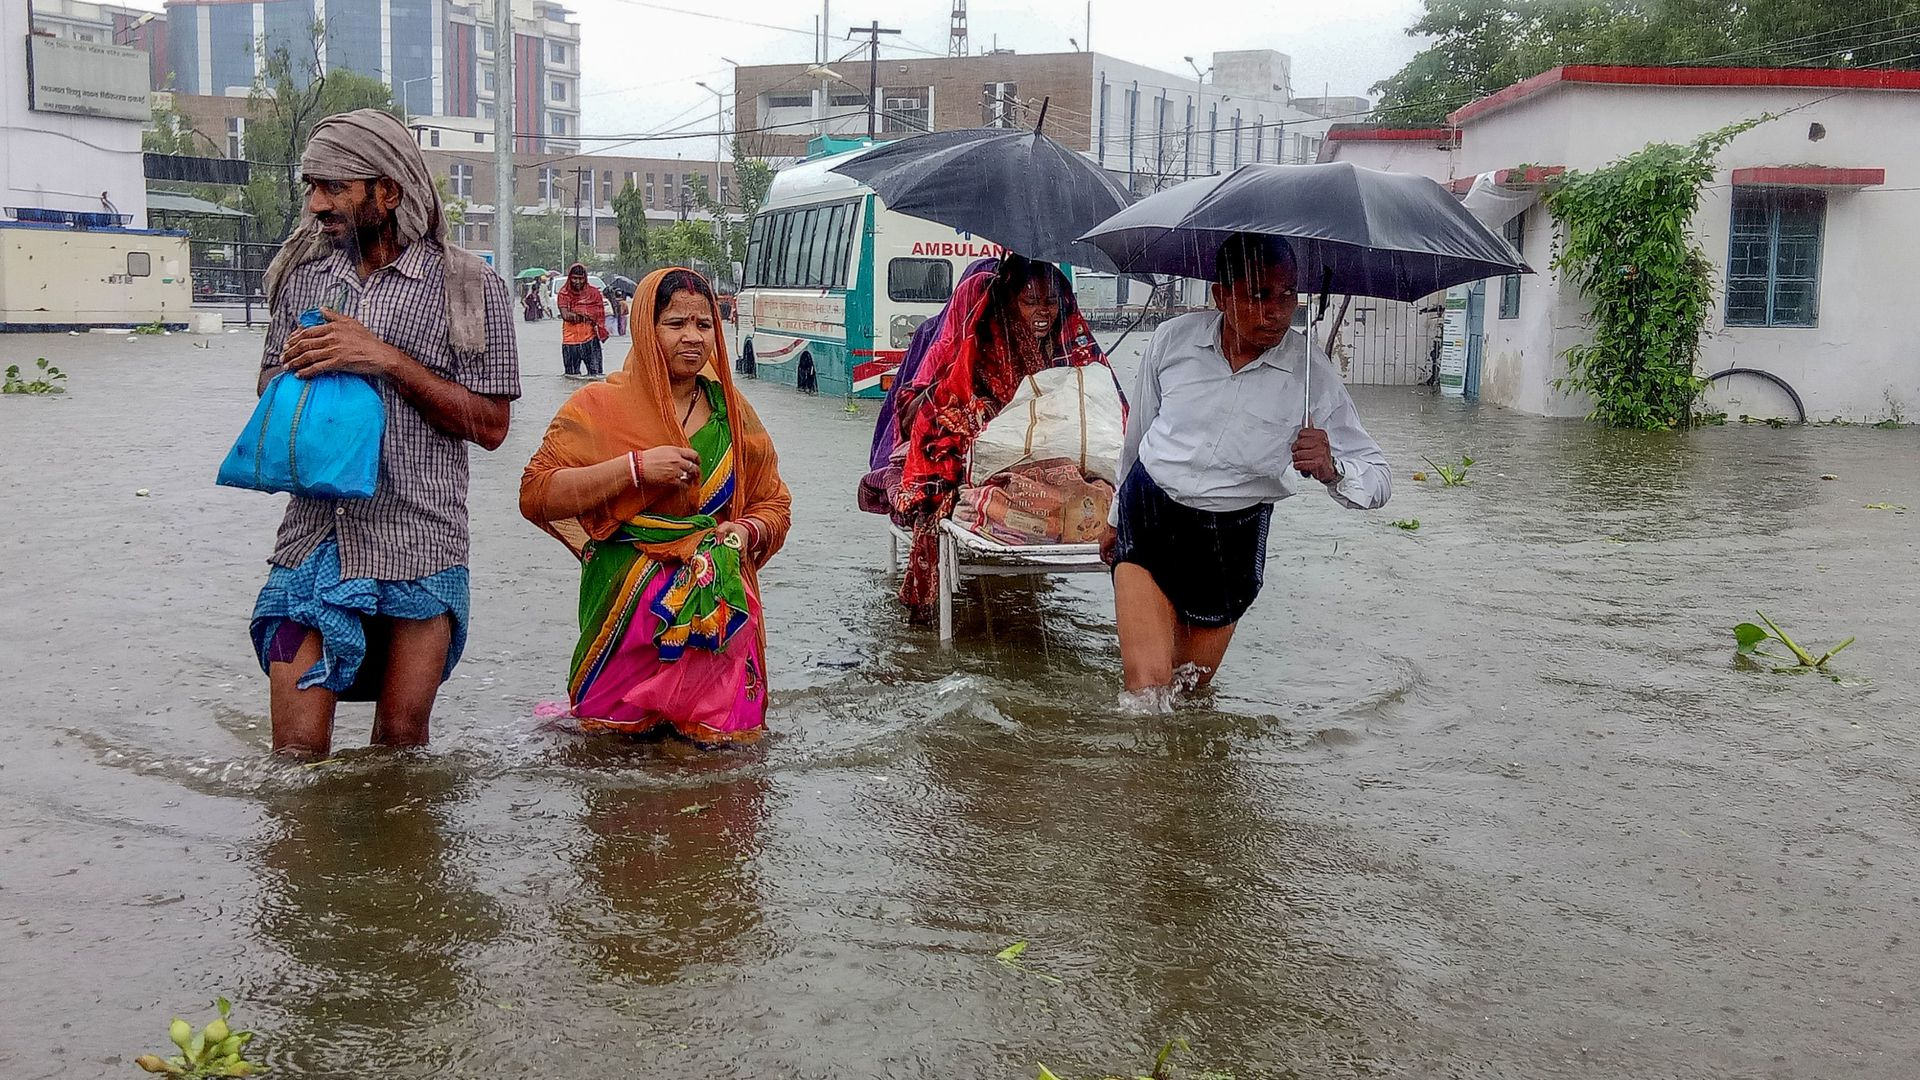 Patients wade through floodwaters on their way to hospital during heavy monsoon rain in Patna in the northeastern state of Bihar on September 28